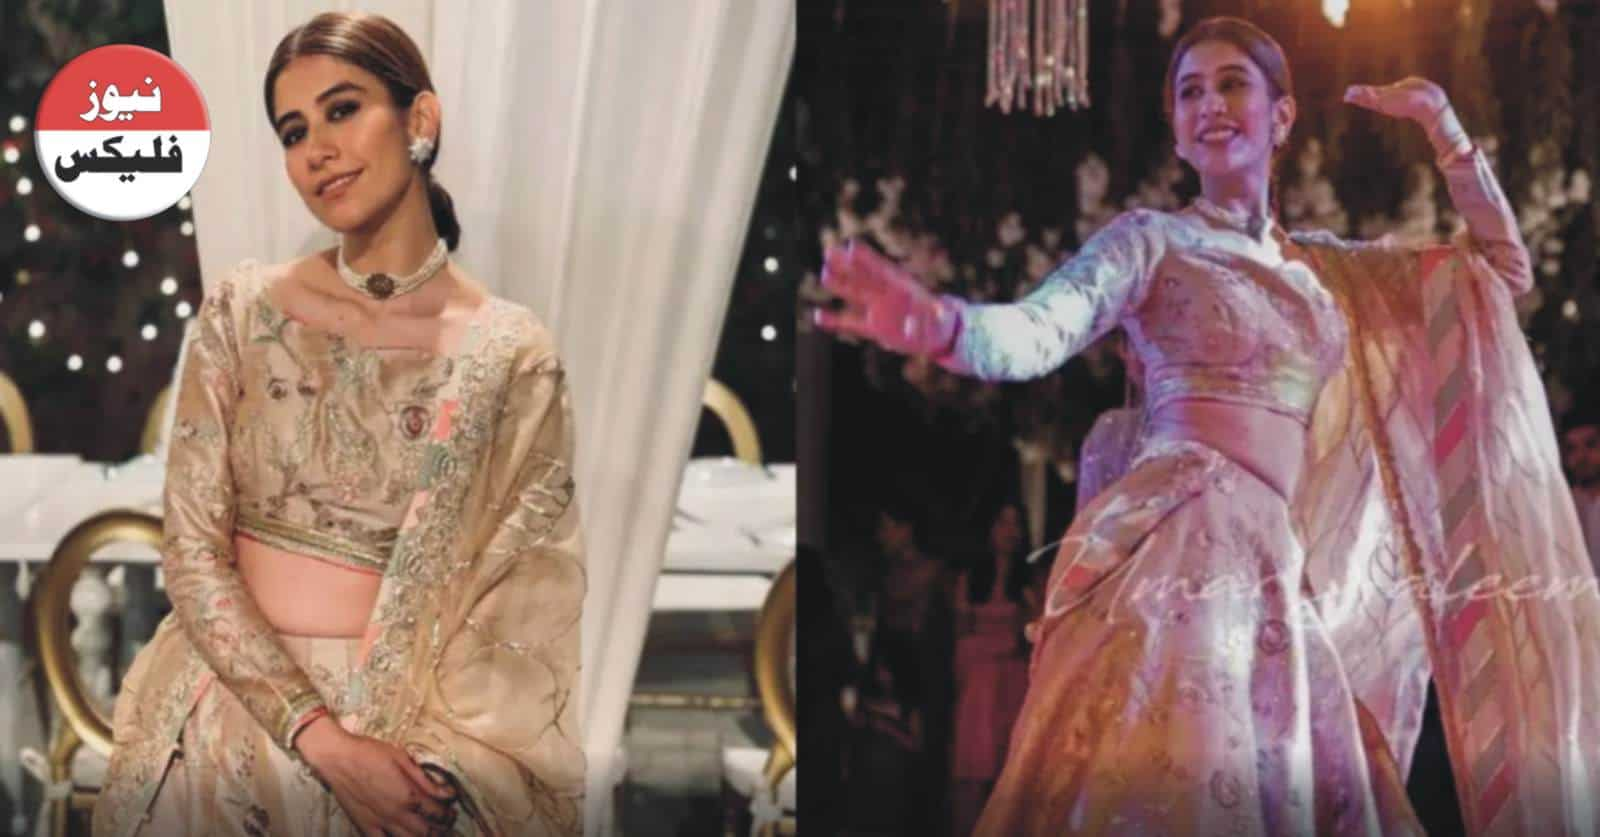 watch-syra-yousuf-shows-off-her-dance-skills-in-viral-video